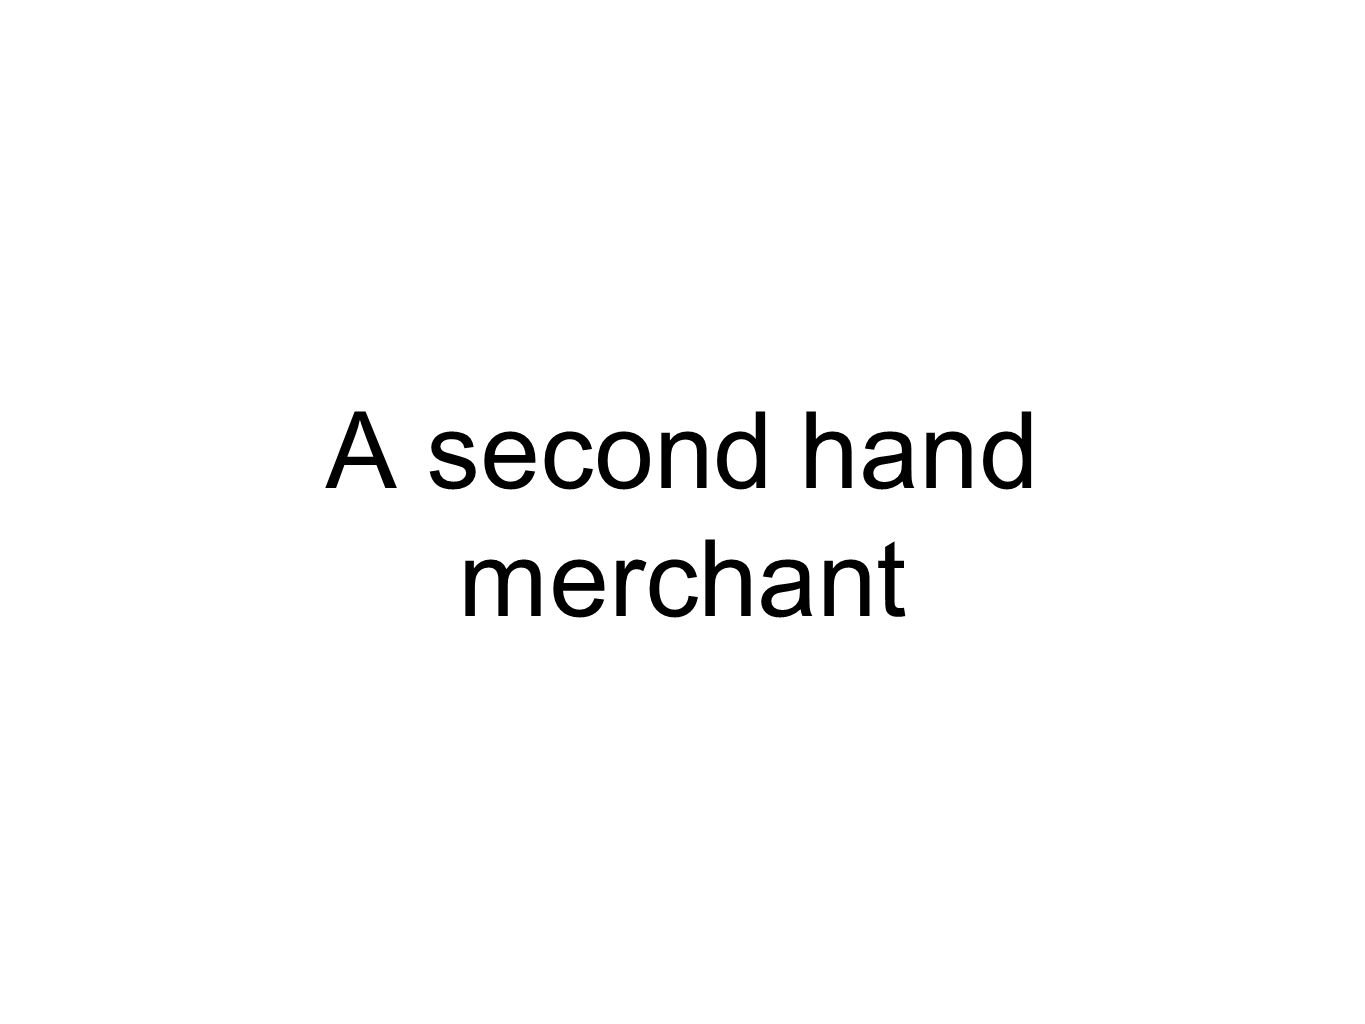 A second hand merchant